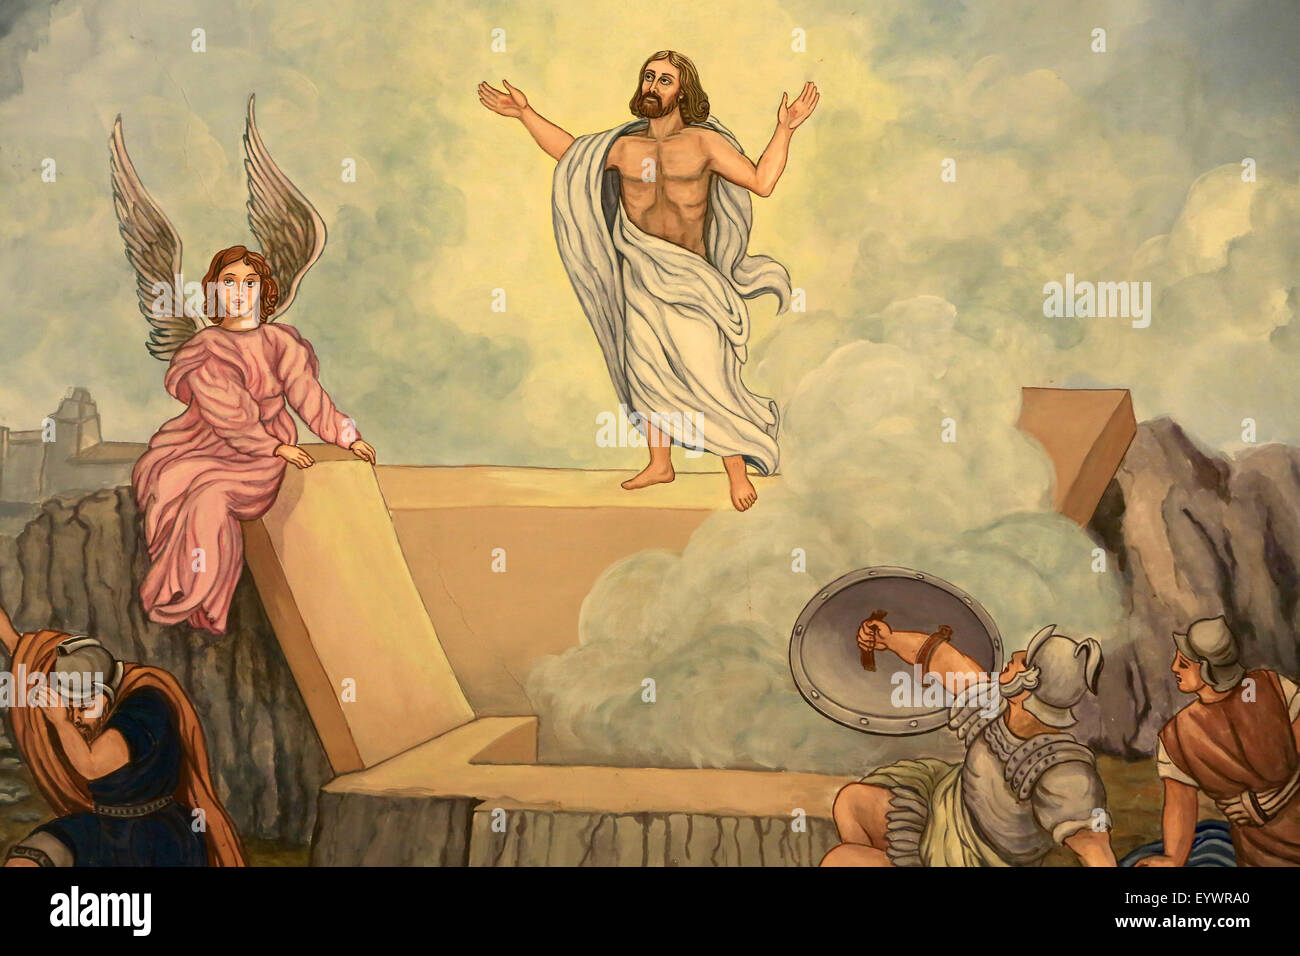 Resurrection of Christ, Domancy, Rhone Alpes, France, Europe - Stock Image